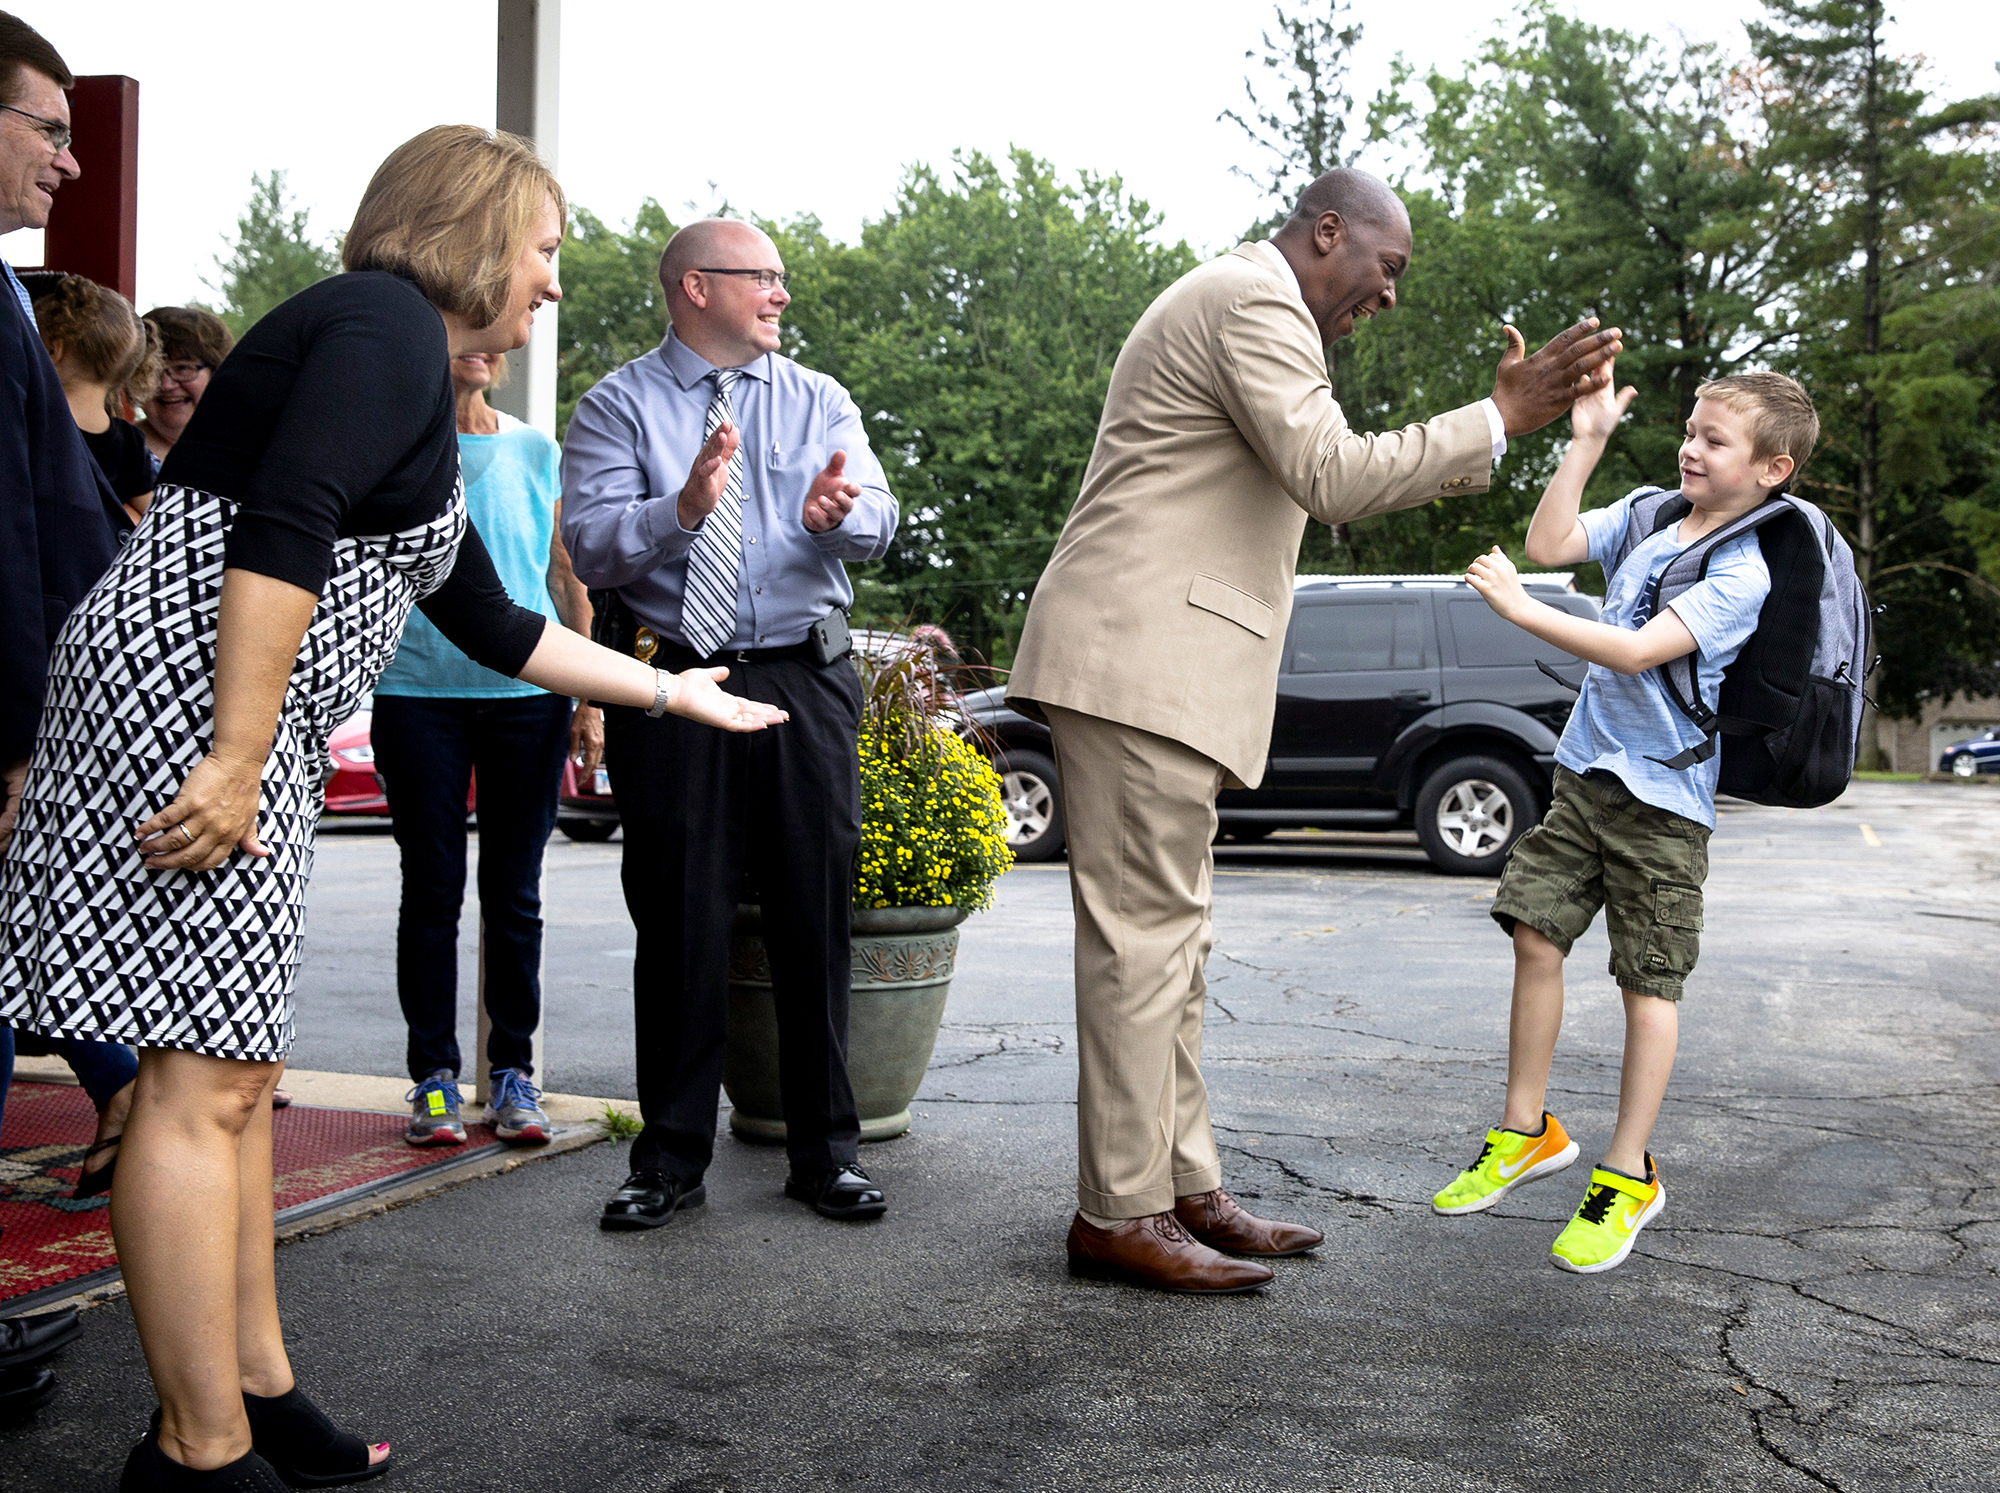 Colton Bowdern, a first grader at Hazel Dell Elementary School, connects with Jamar Scott, the school principal, for a leaping high five on the first day of classes for District 186 schools Monday, Aug. 20, 2018 at Hazel Dell Elementary School in Springfield, Ill. Faculty members and local officials, including Mayor Jim Langfelder, left, School Superintendent Jennifer Gill and Sgt. Derek Wheeler from the Springfield Police Department, were on hand to greet each student. [Rich Saal/The State Journal-Register]